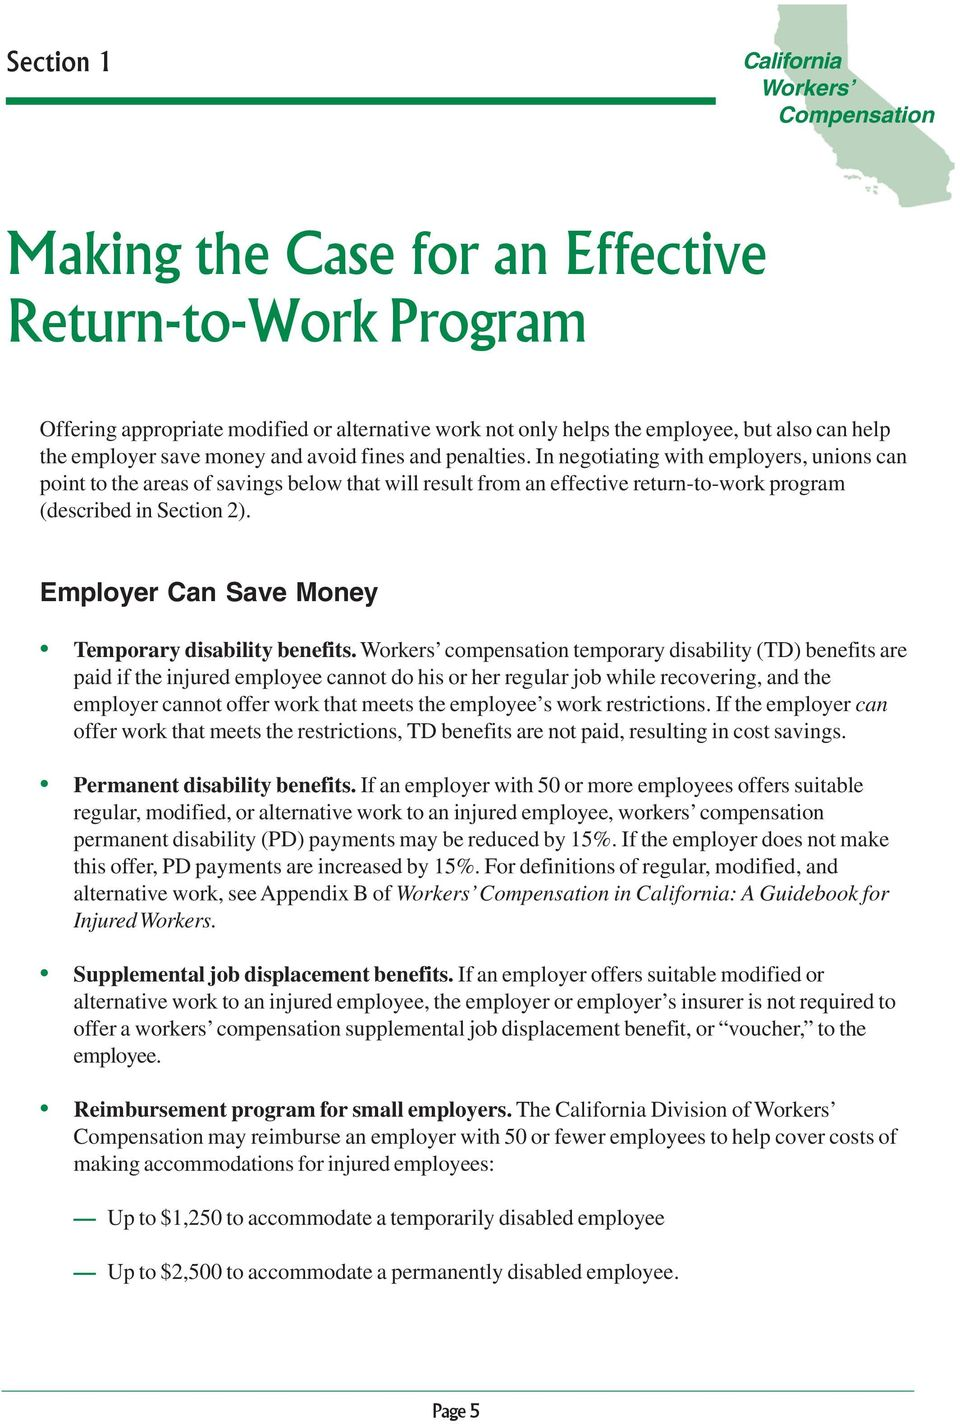 In negotiating with employers, unions can point to the areas of savings below that will result from an effective return-to-work program (described in Section 2).